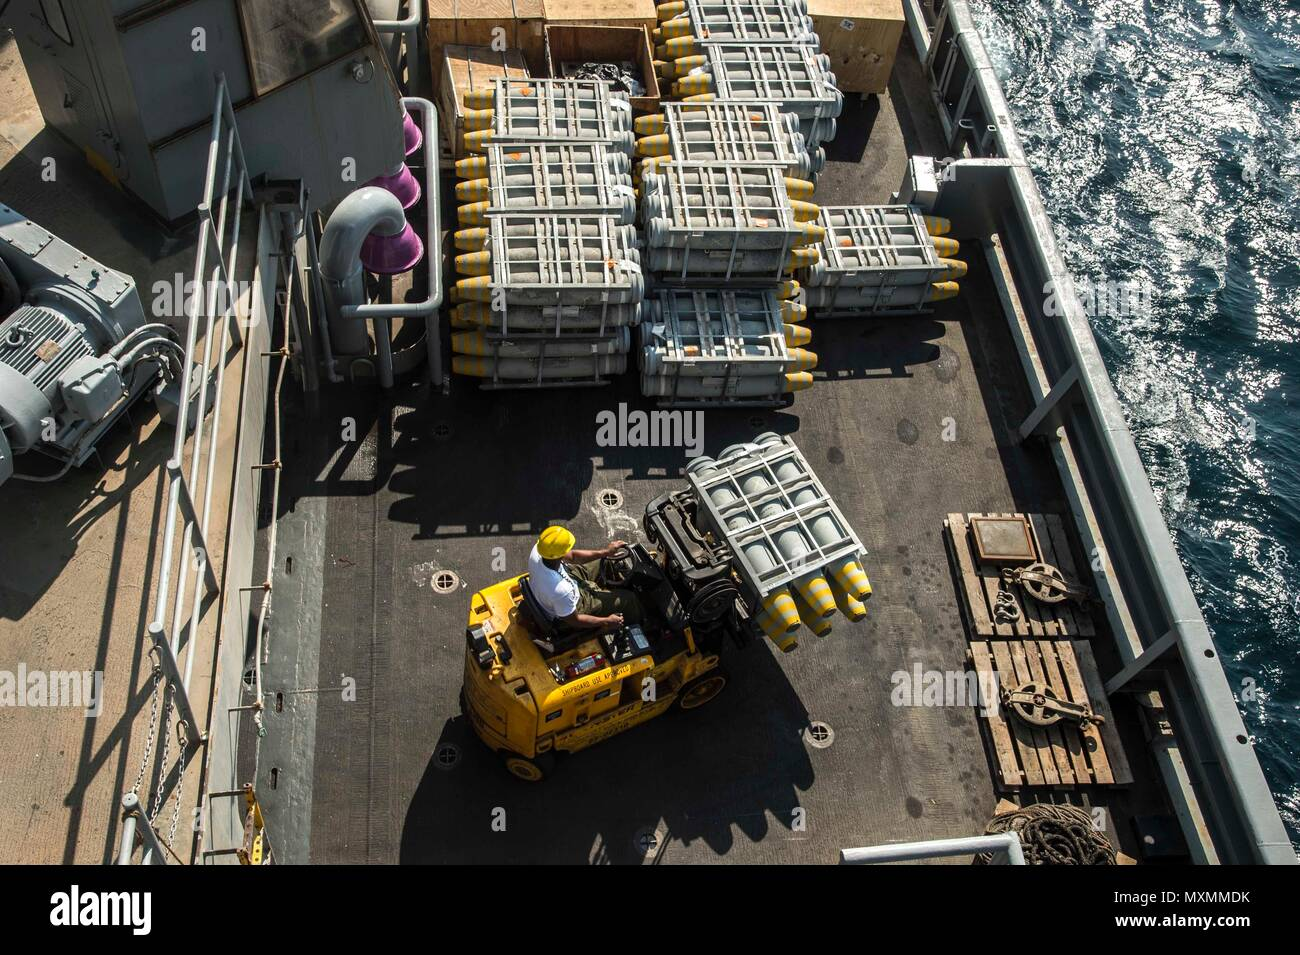 161117-N-RX777-008    ARABIAN GULF (Nov. 17, 2016) Dylan Rios moves ordnance in preparation for an upcoming replenishment-at-sea aboard the fast combat support ship USNS Arctic (T-AOE 8). Arctic is deployed supporting coalition maritime forces ships in the U.S. 5th Fleet area of operations. (U.S. Navy photo by Petty Officer 3rd Class Cole Keller) - Stock Image